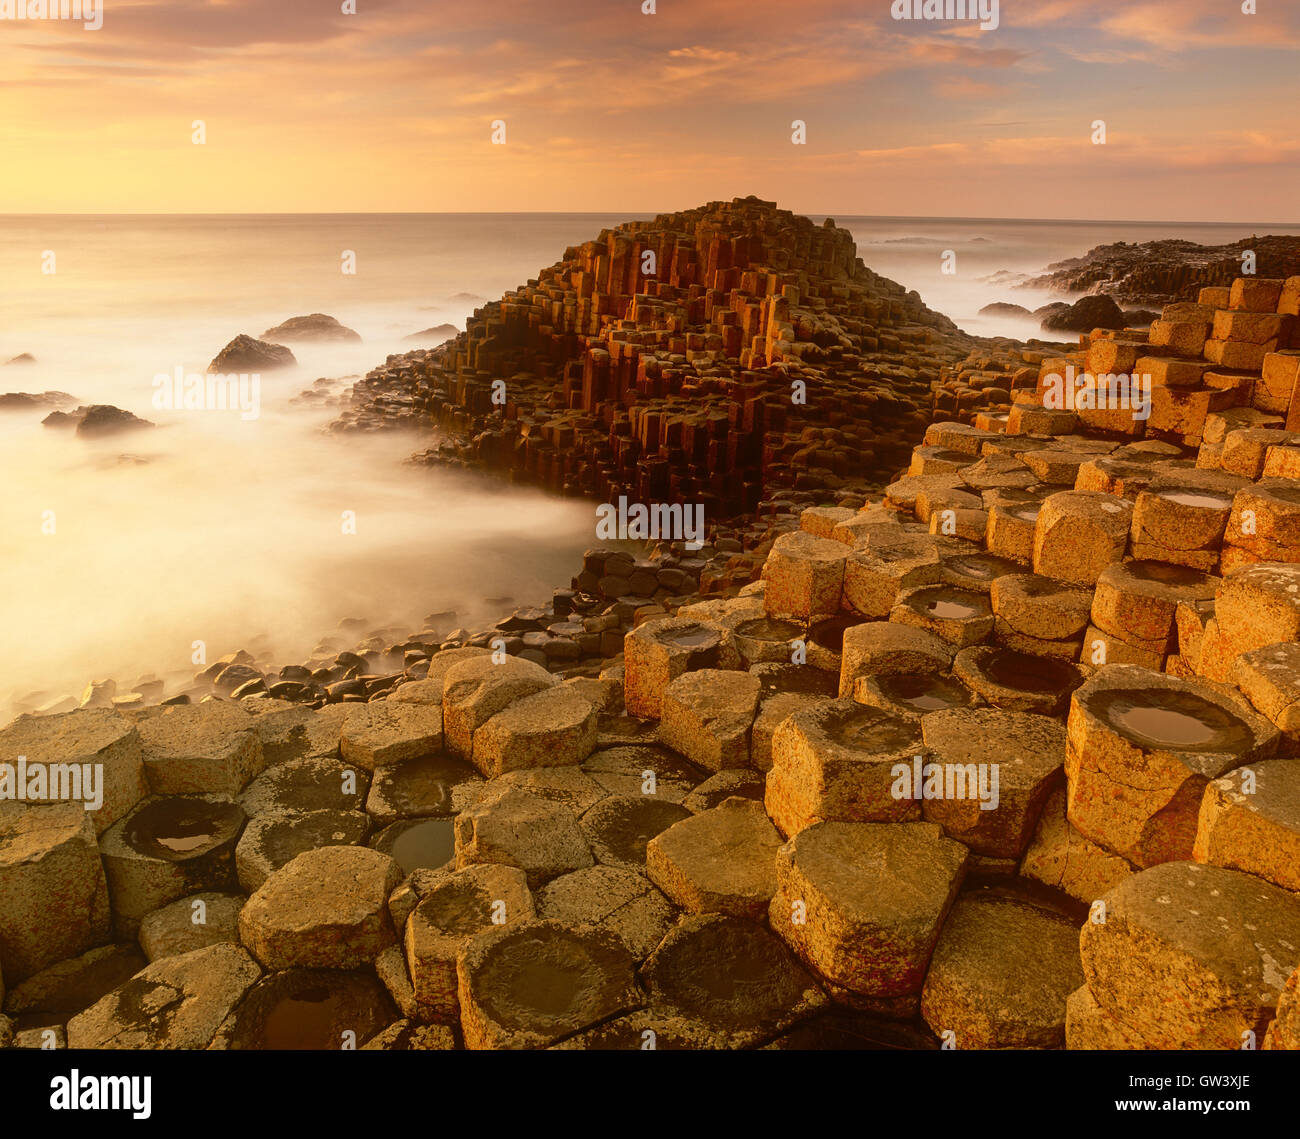 Giants Causeway at sunset, Antrim coast, County Antrim, Northern Ireland, UK - Stock Image